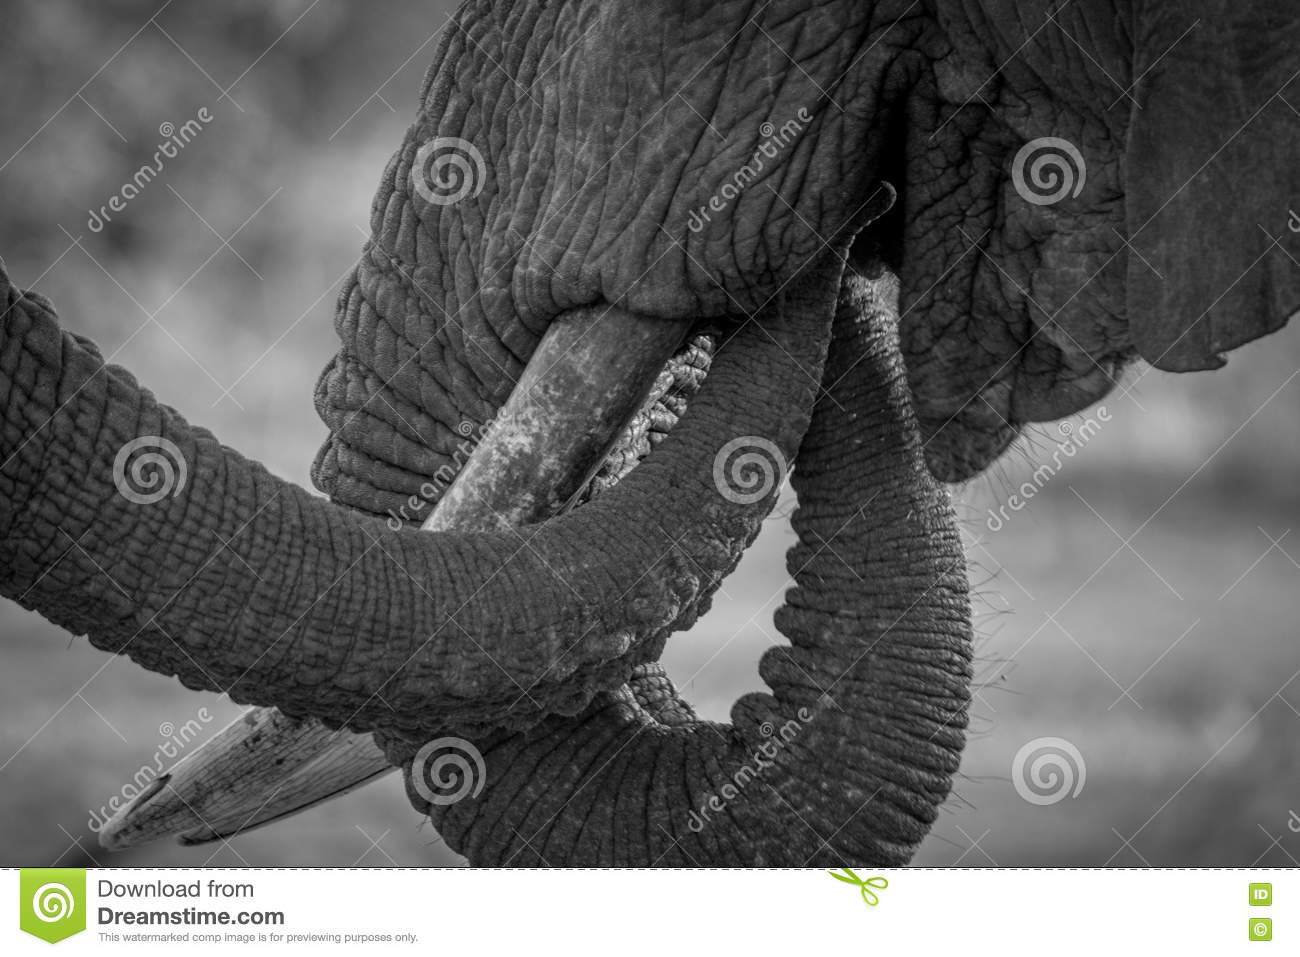 Close up of two Elephant trunks in black and white.